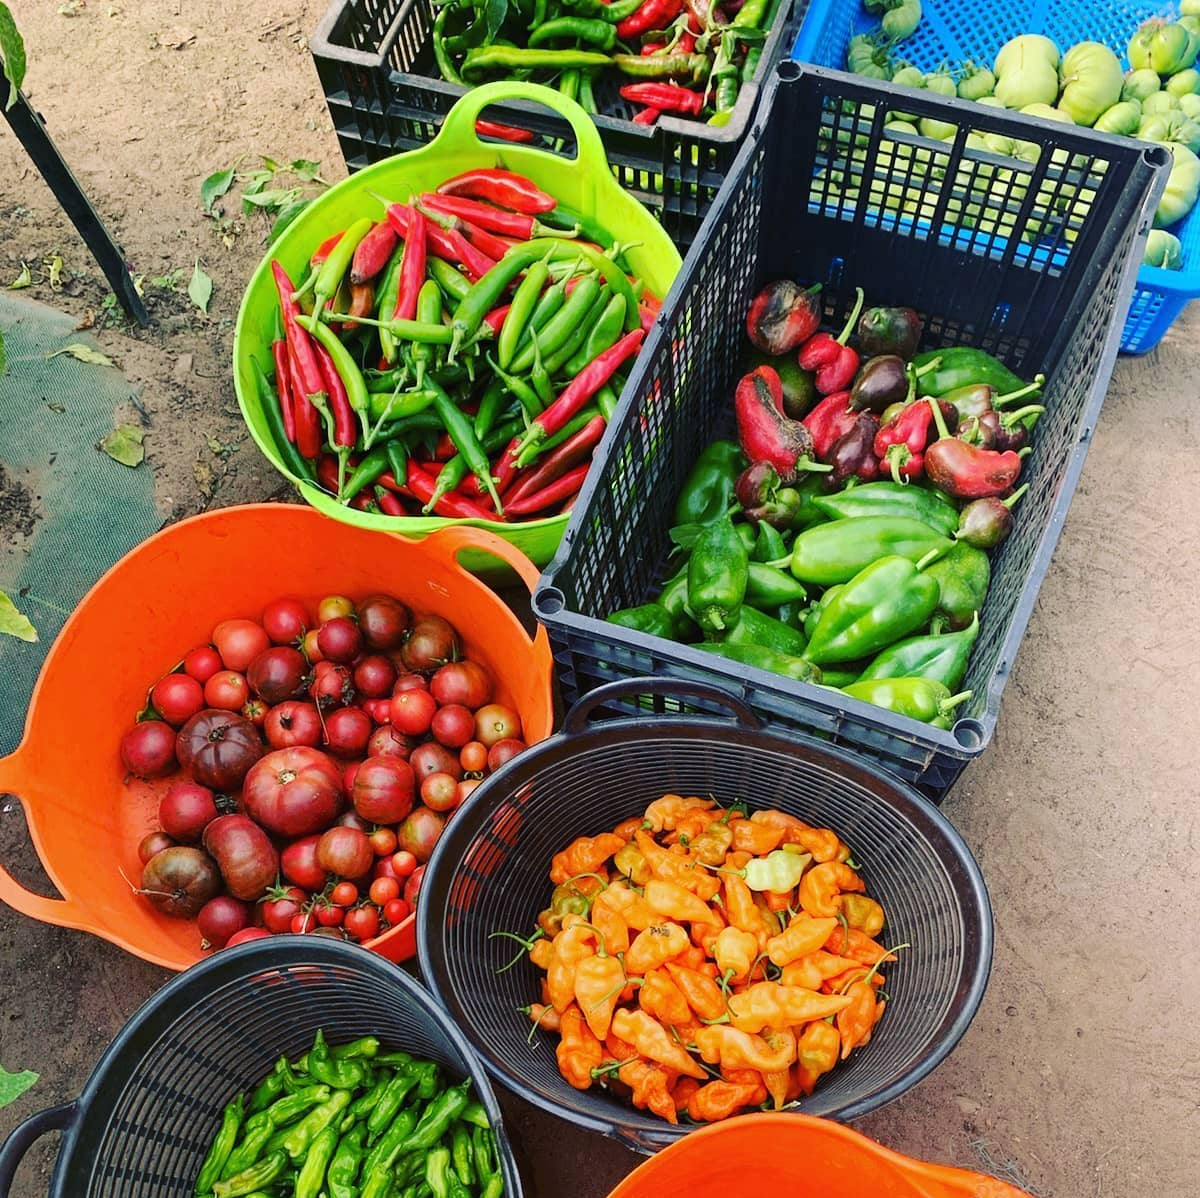 Assorted locally grown produce in baskets.